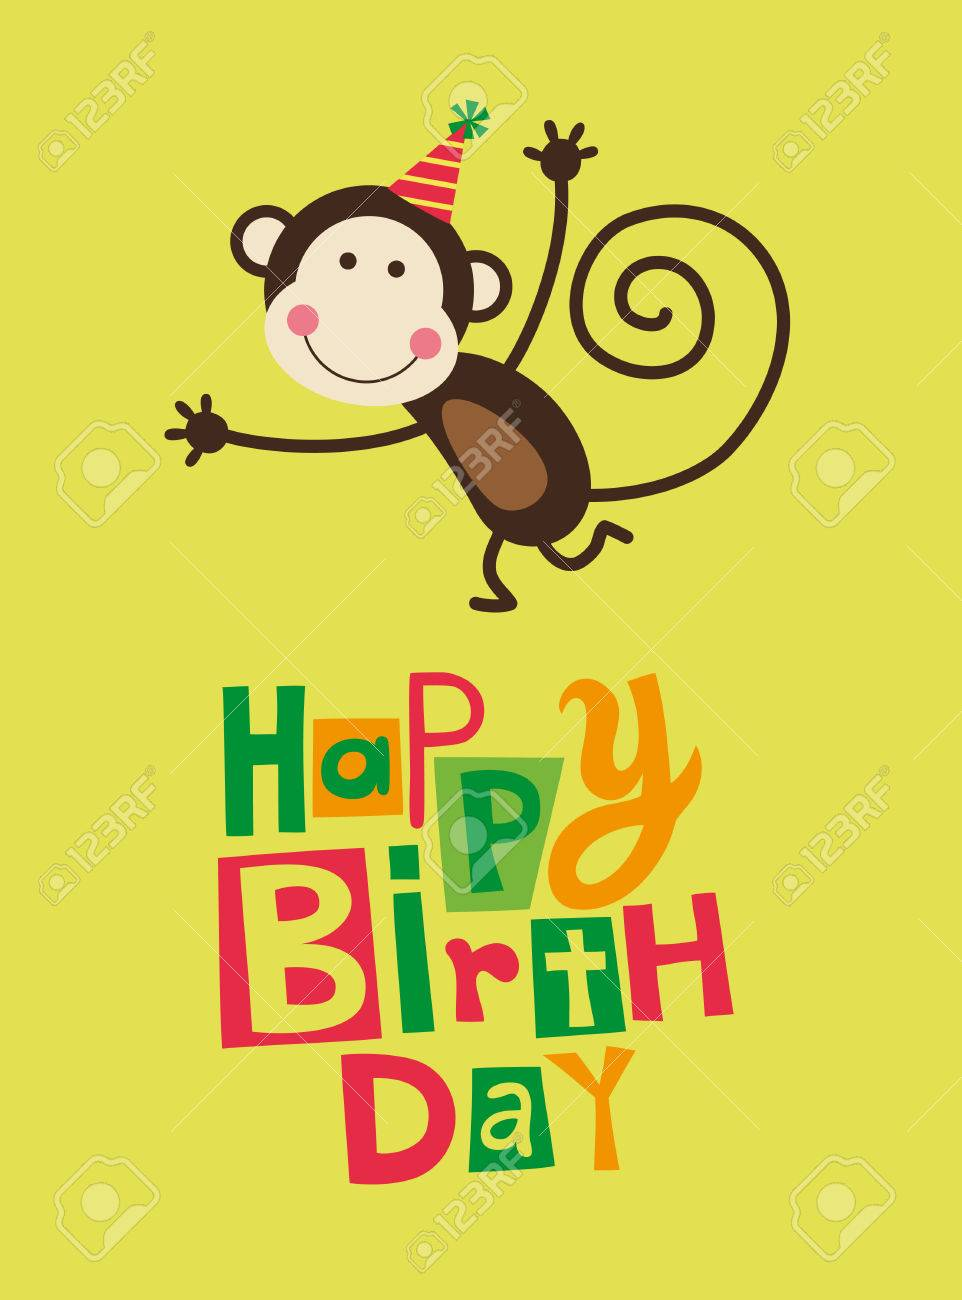 Cute Happy Birthday Card With Fun Monkey Stock Vector